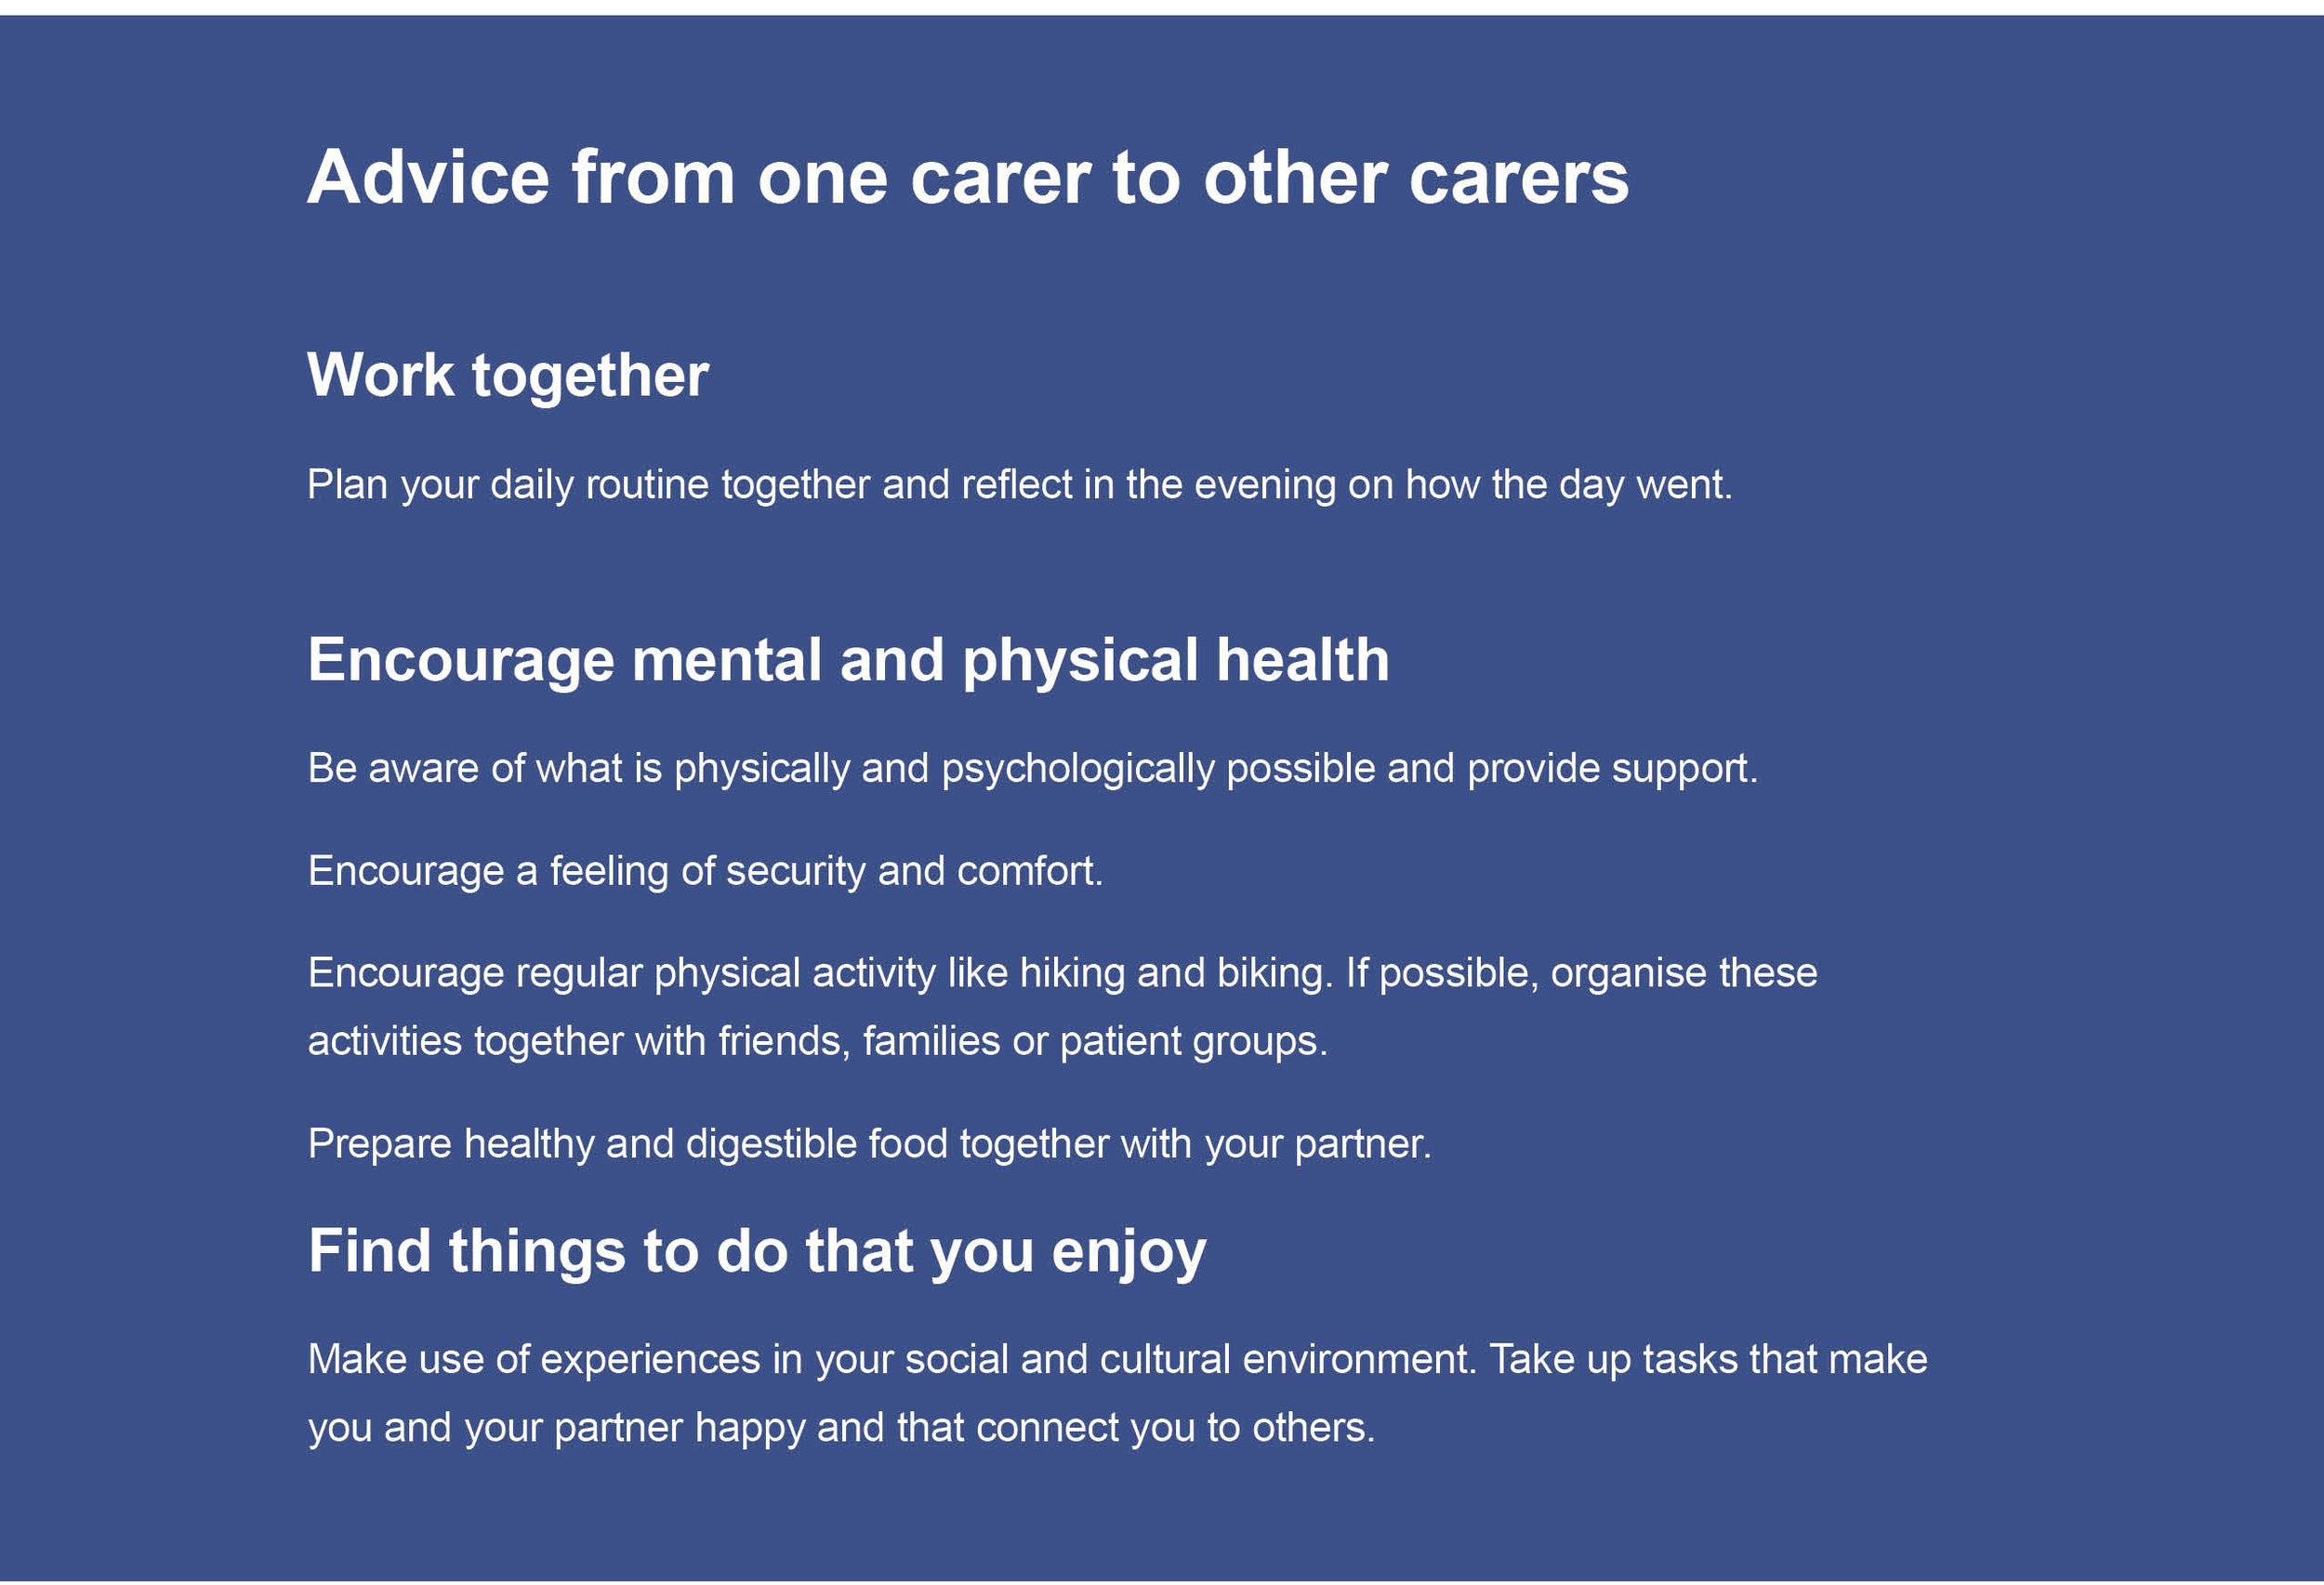 Advice from one carer to other carers.jpg